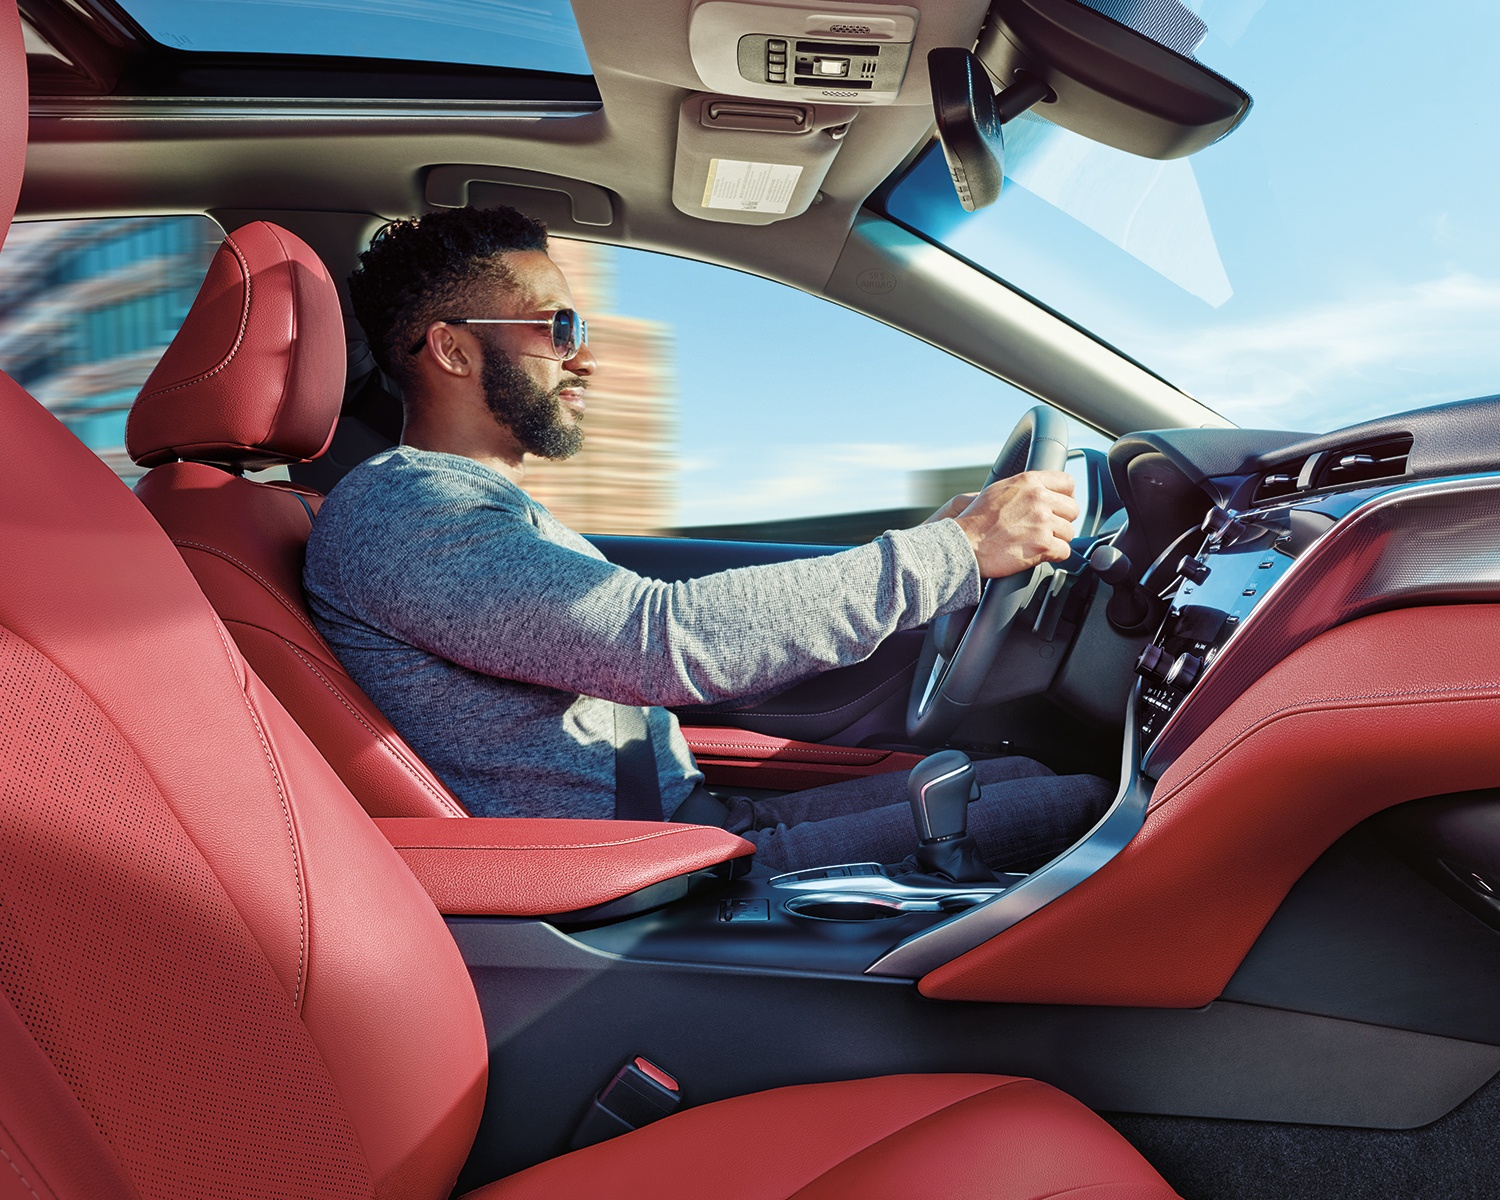 2019 Toyota Camry Steering Wheel at Ken Shaw Toyota in Toronto